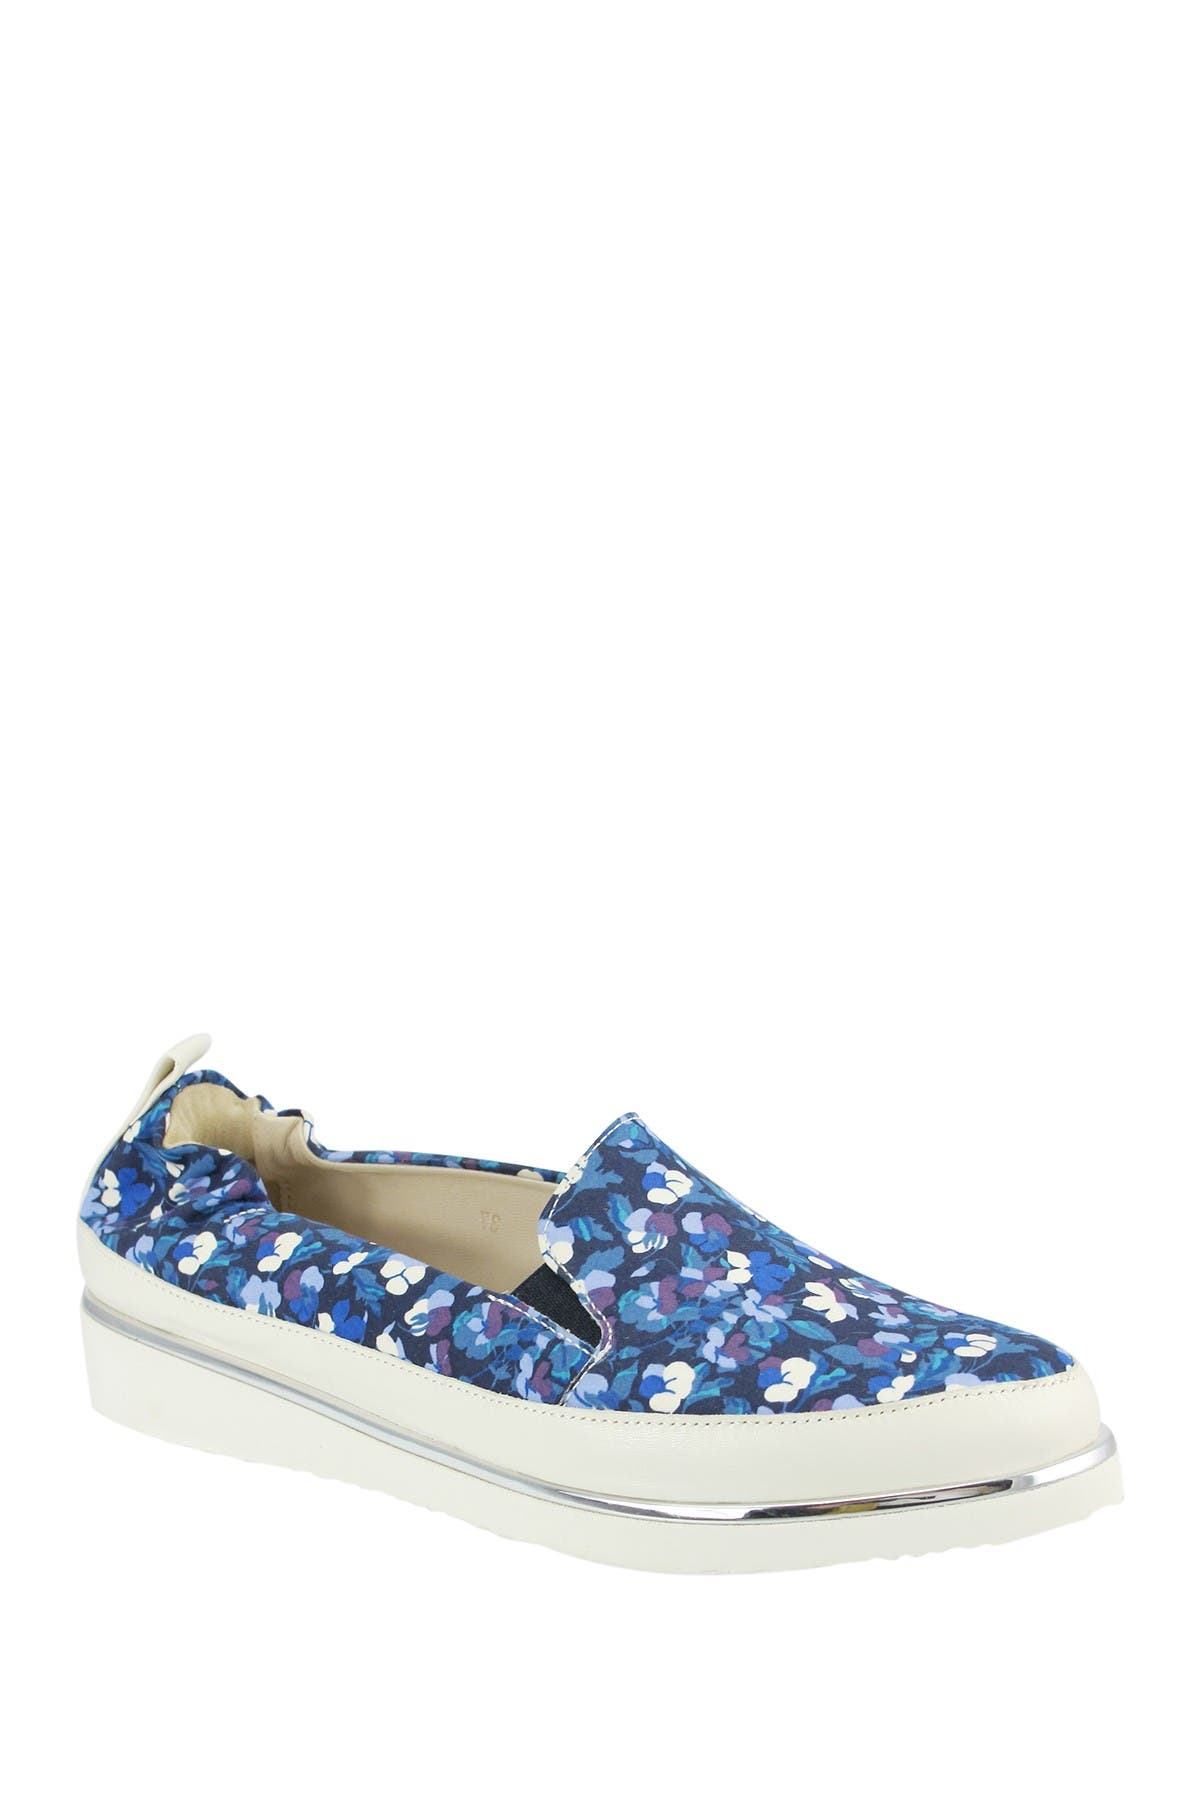 Image of RON WHITE Nell Floral Slip-On Sneaker